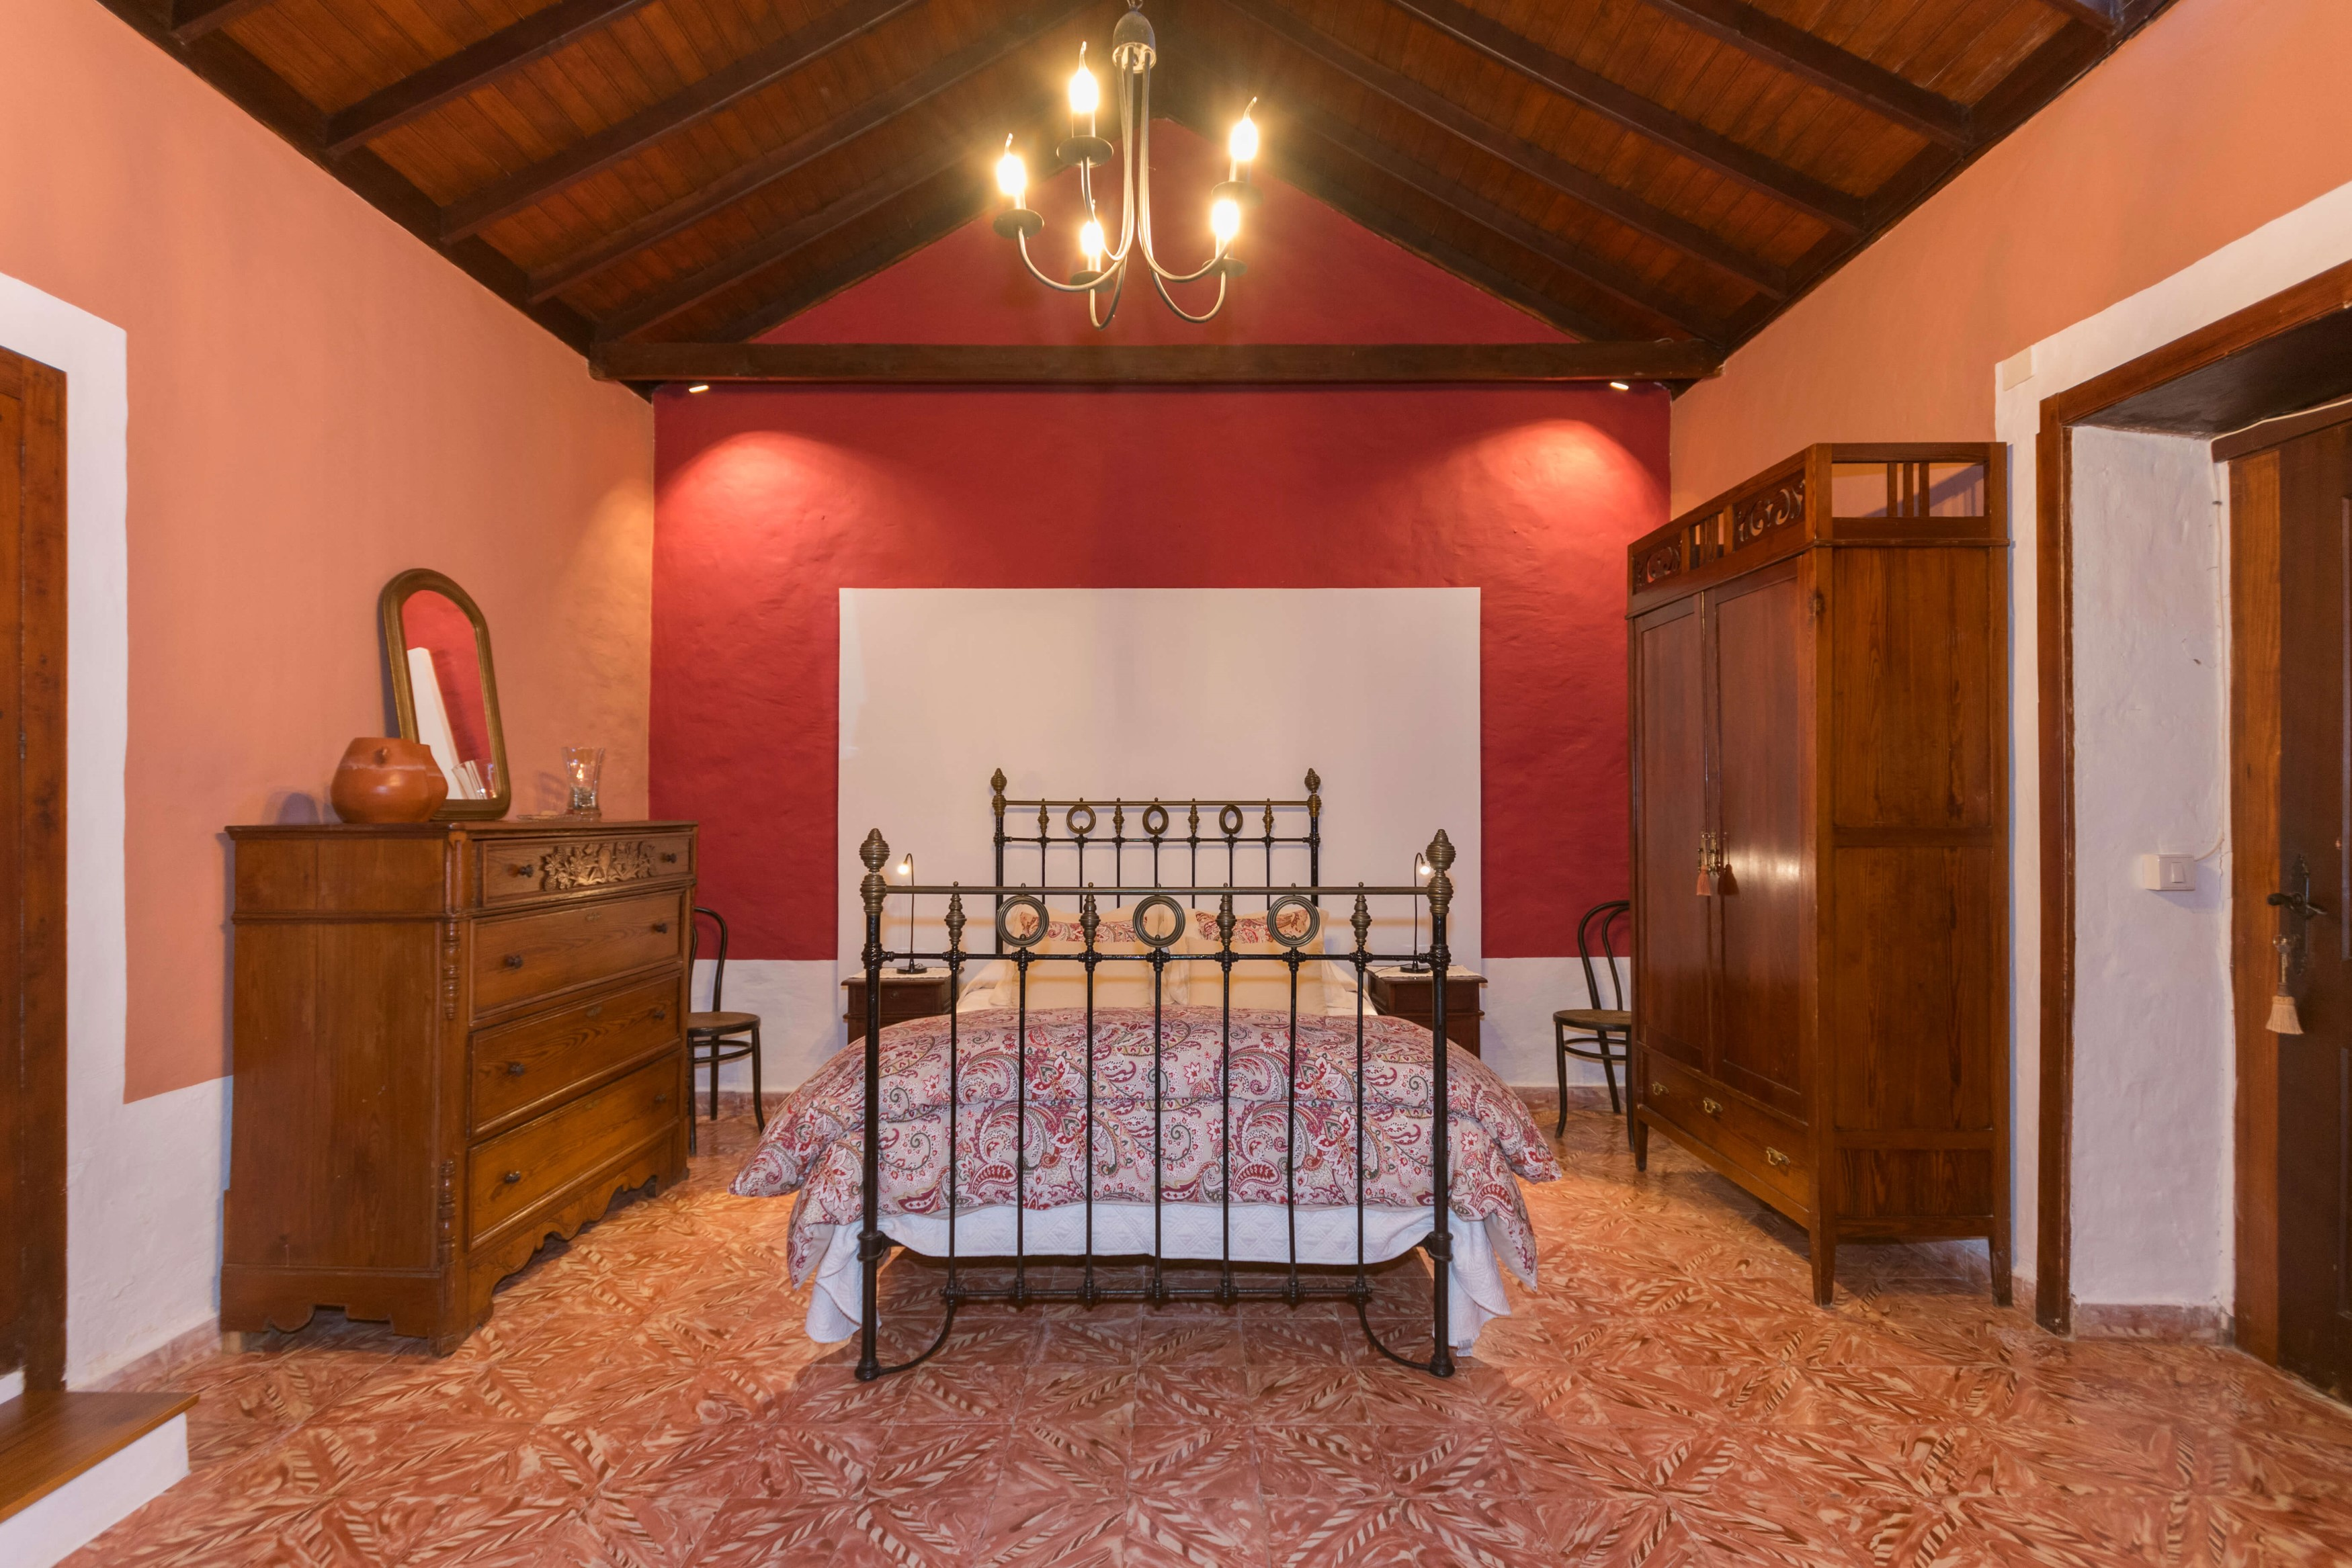 Maison de vacances House - 2 Bedrooms with Pool and WiFi - 106781 (2742990), San Fernando, Grande Canarie, Iles Canaries, Espagne, image 7